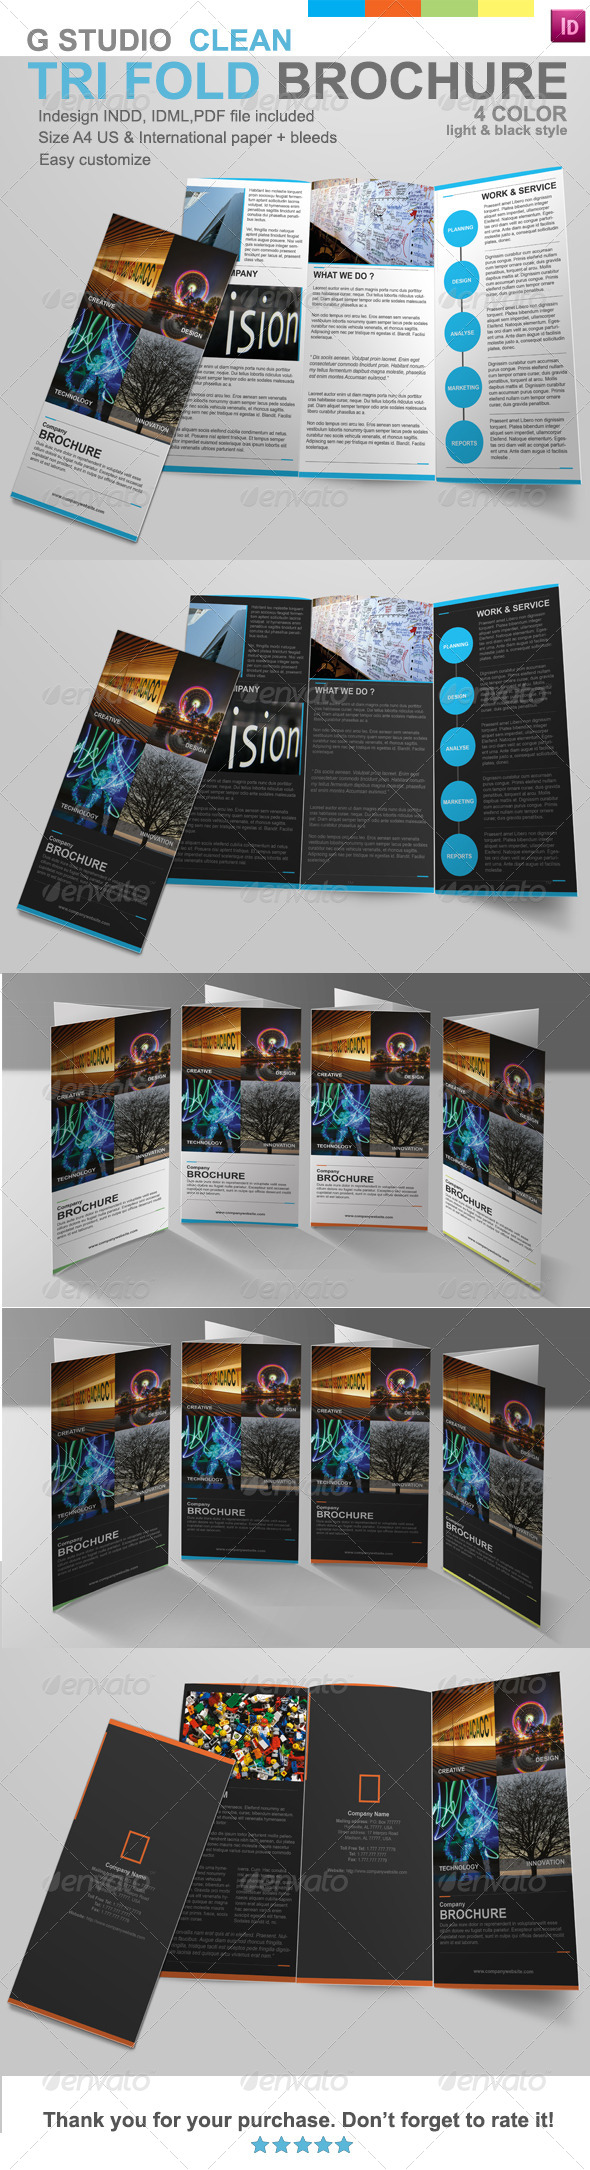 G Studio Clean Tri-Fold Brochure Template - Corporate Brochures